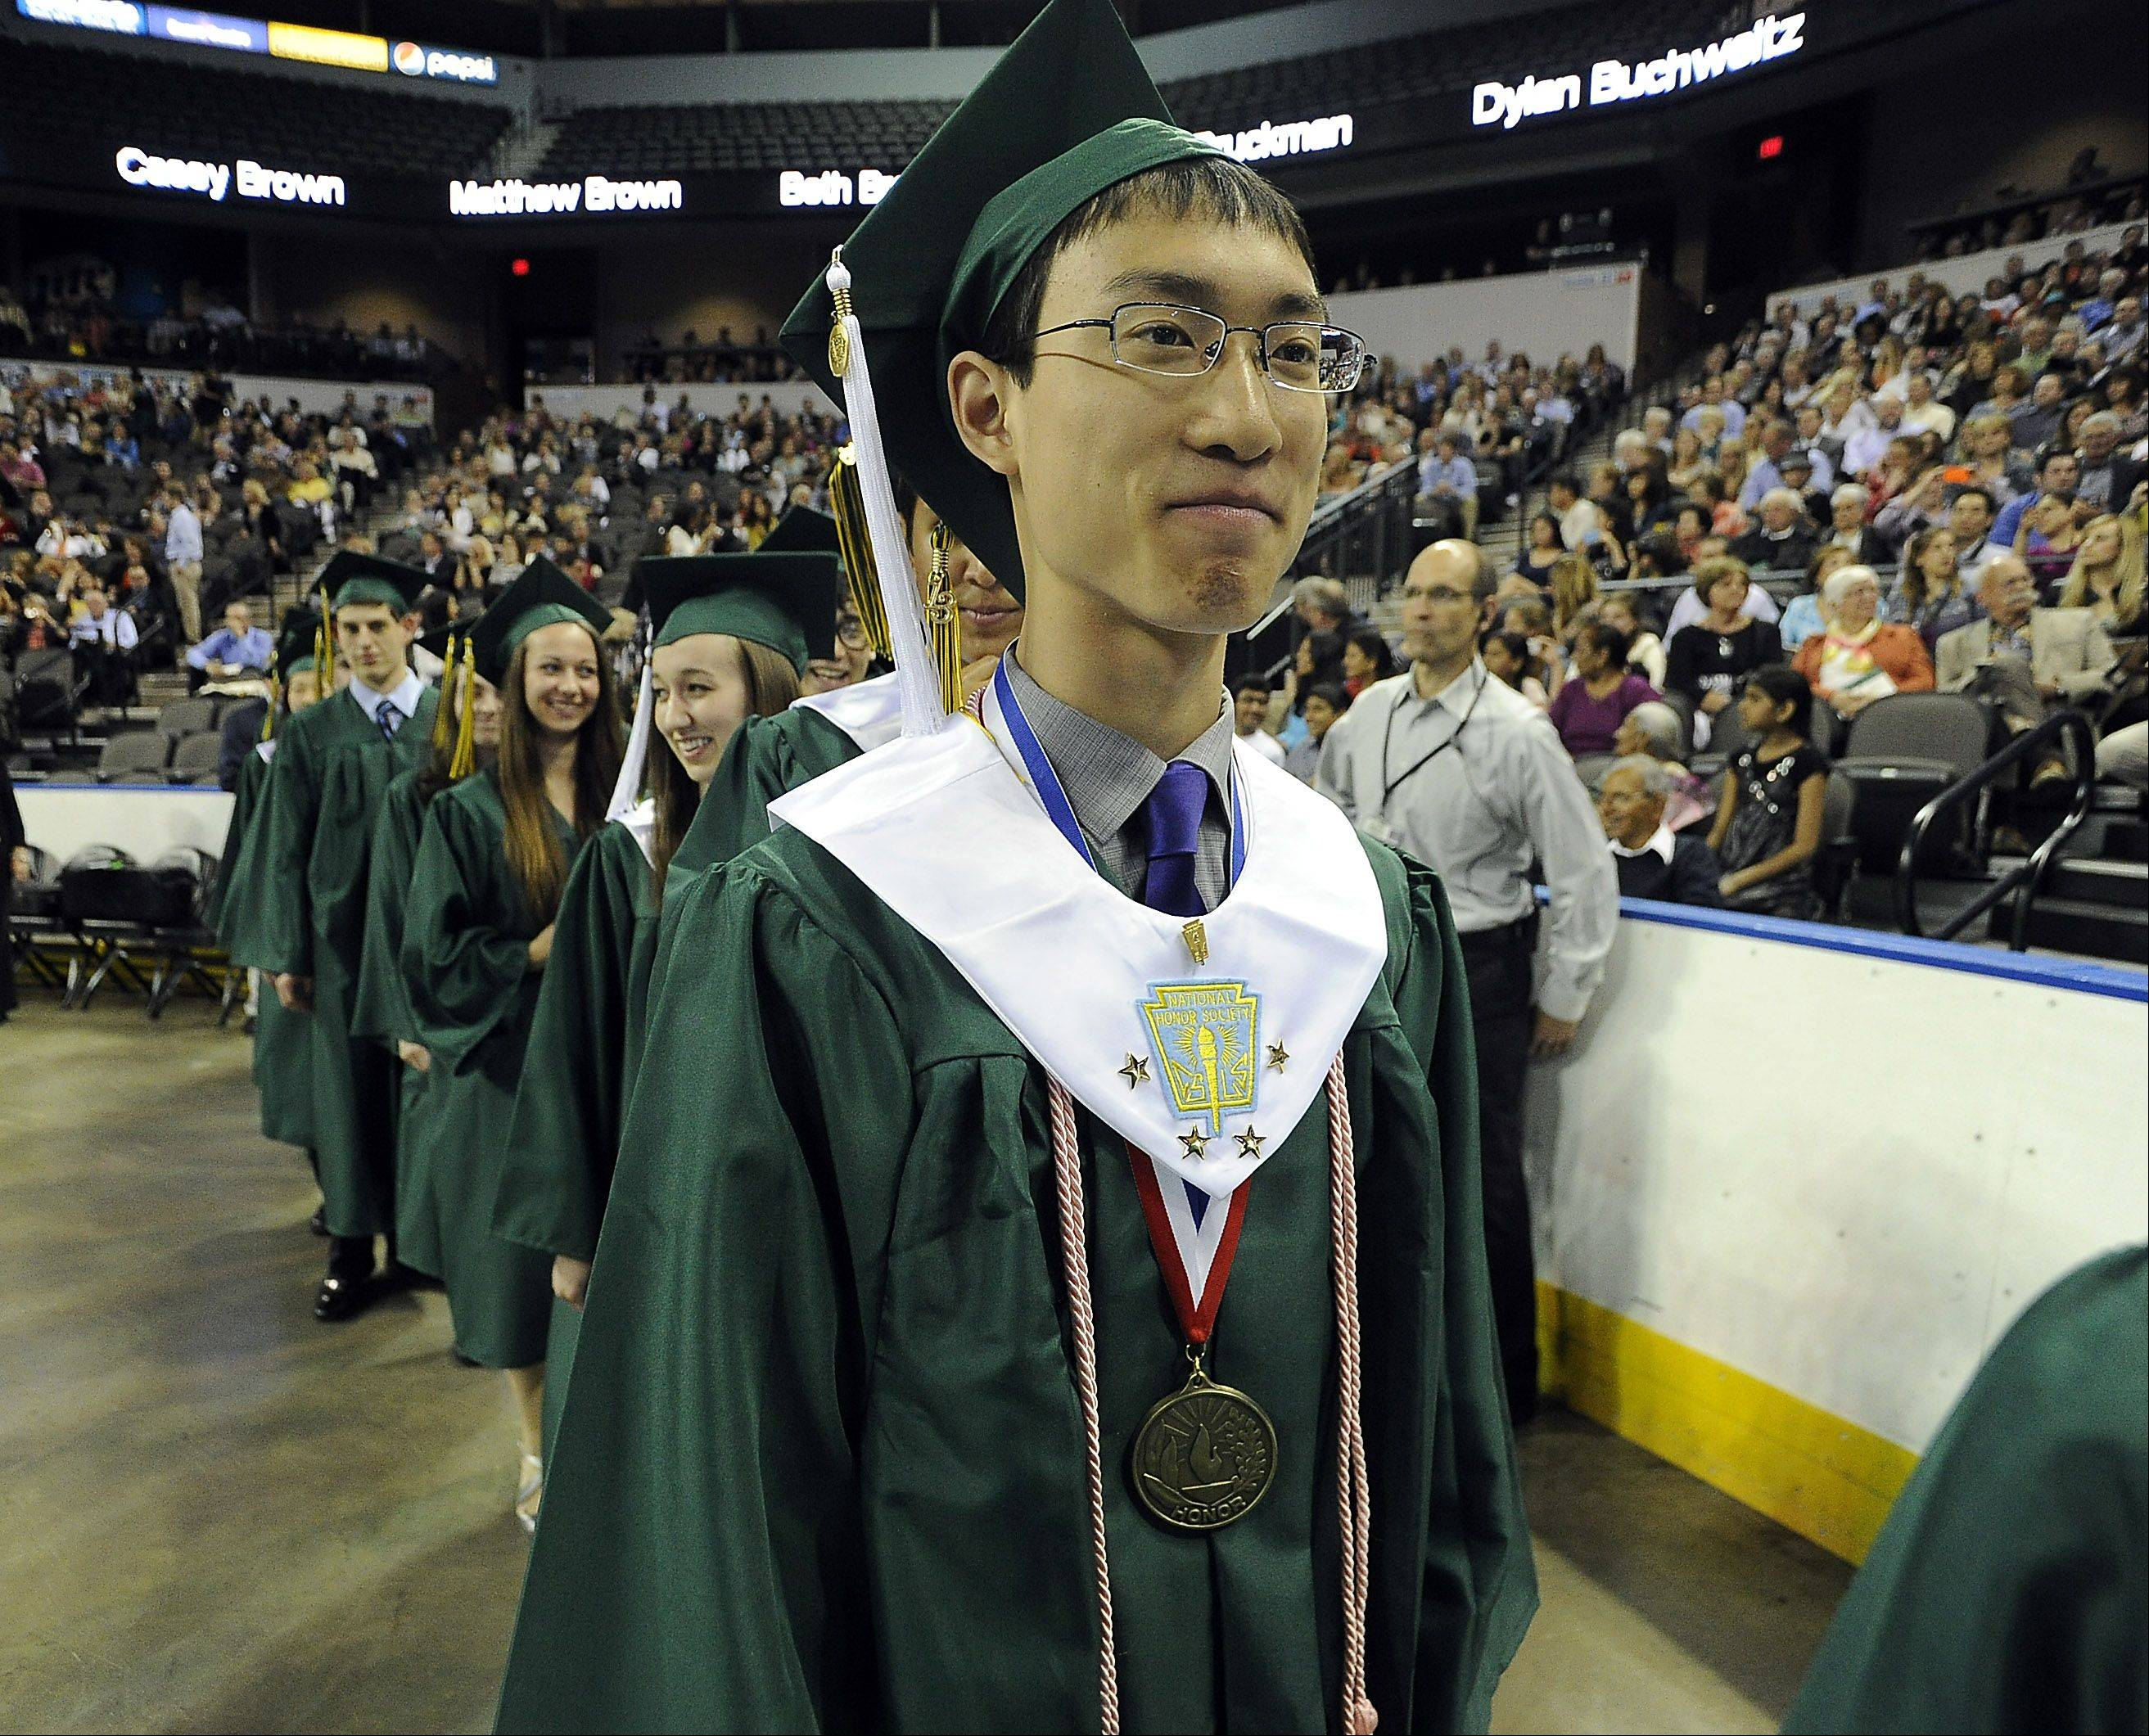 Justin Doong,18, of Kildeer walks in with classmates.